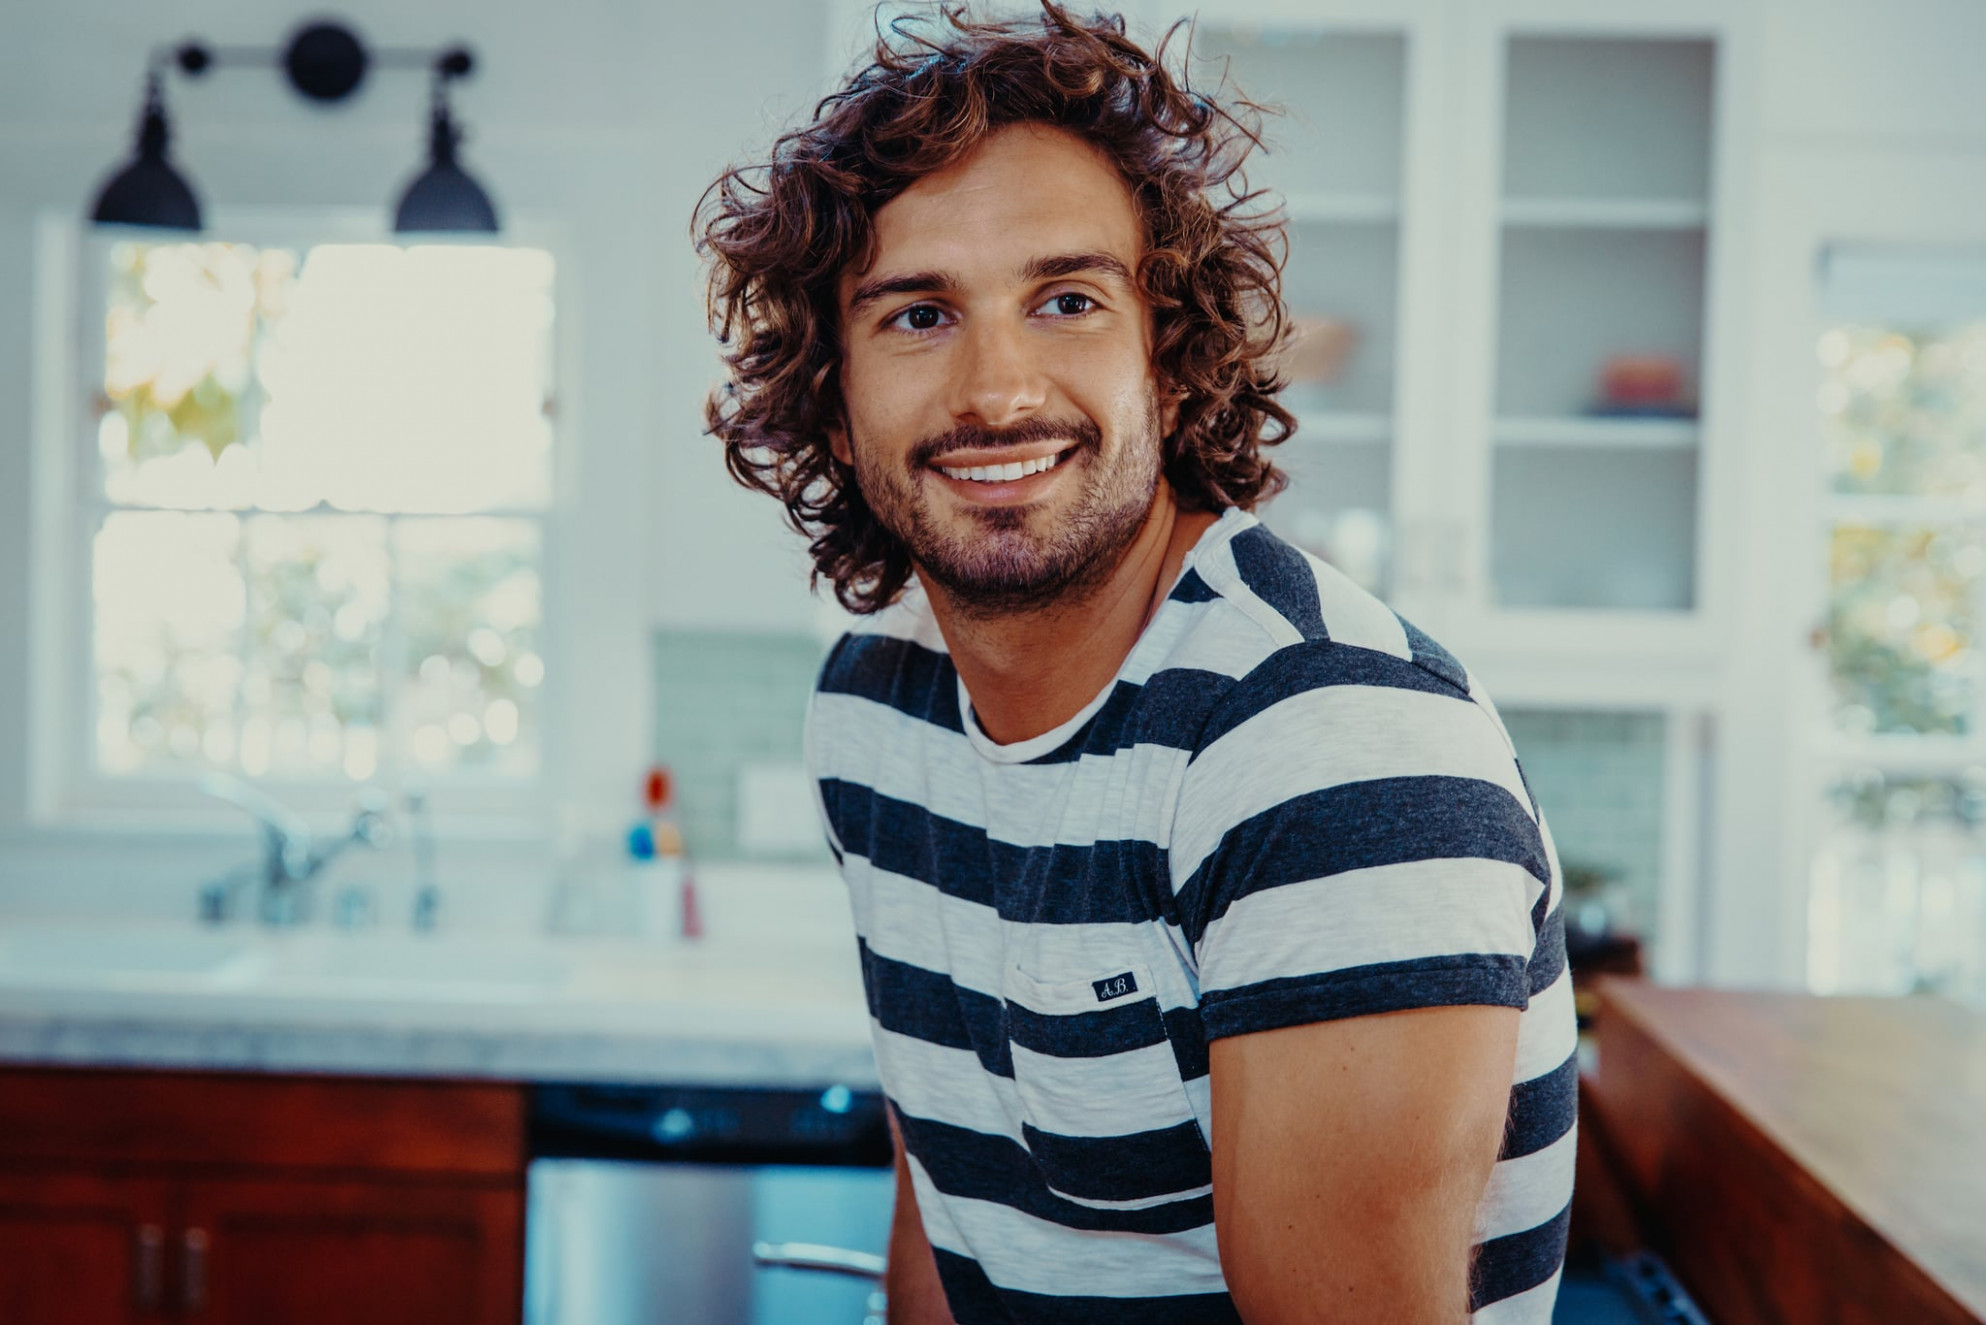 POPSUGAR Interview: The Body Coach, Joe Wicks | POPSUGAR ..